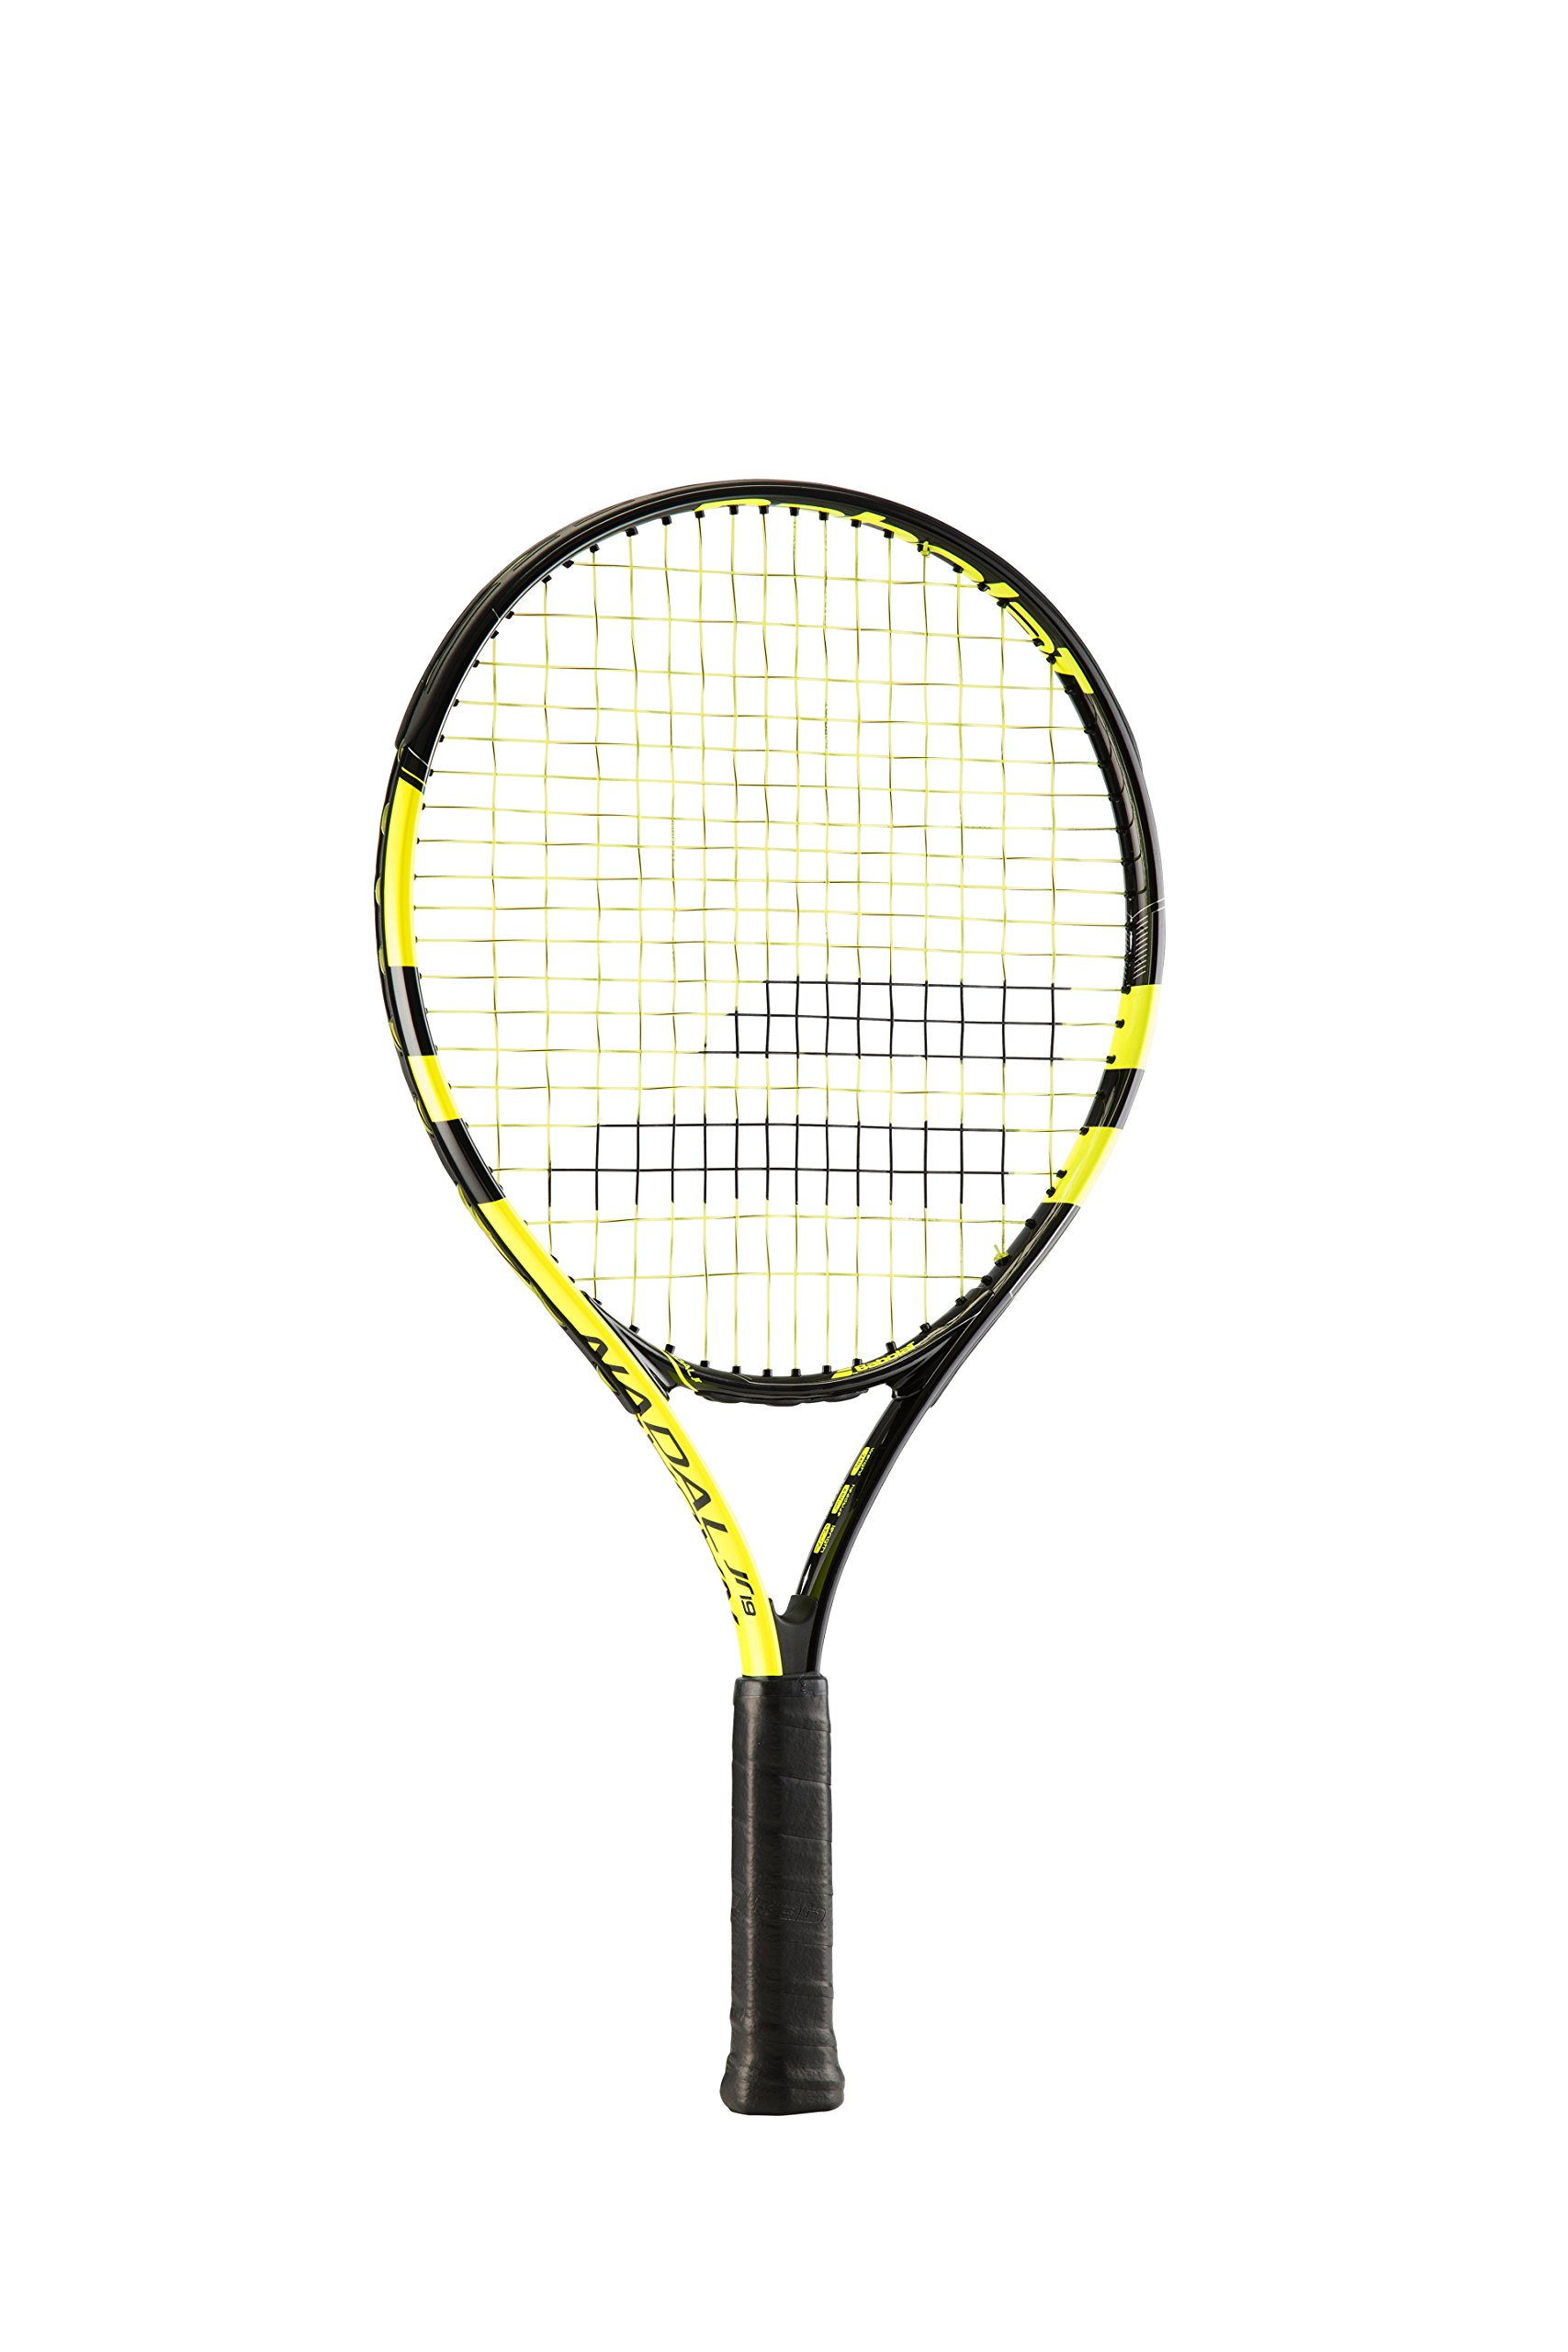 Babolat Kid S Nadal 19 Tennis Racquet Yellow 0000 Grip Buy Online In Gambia Babolat Products In Gambia See Prices Reviews And Free Delivery Over 3 500 D Desertcart